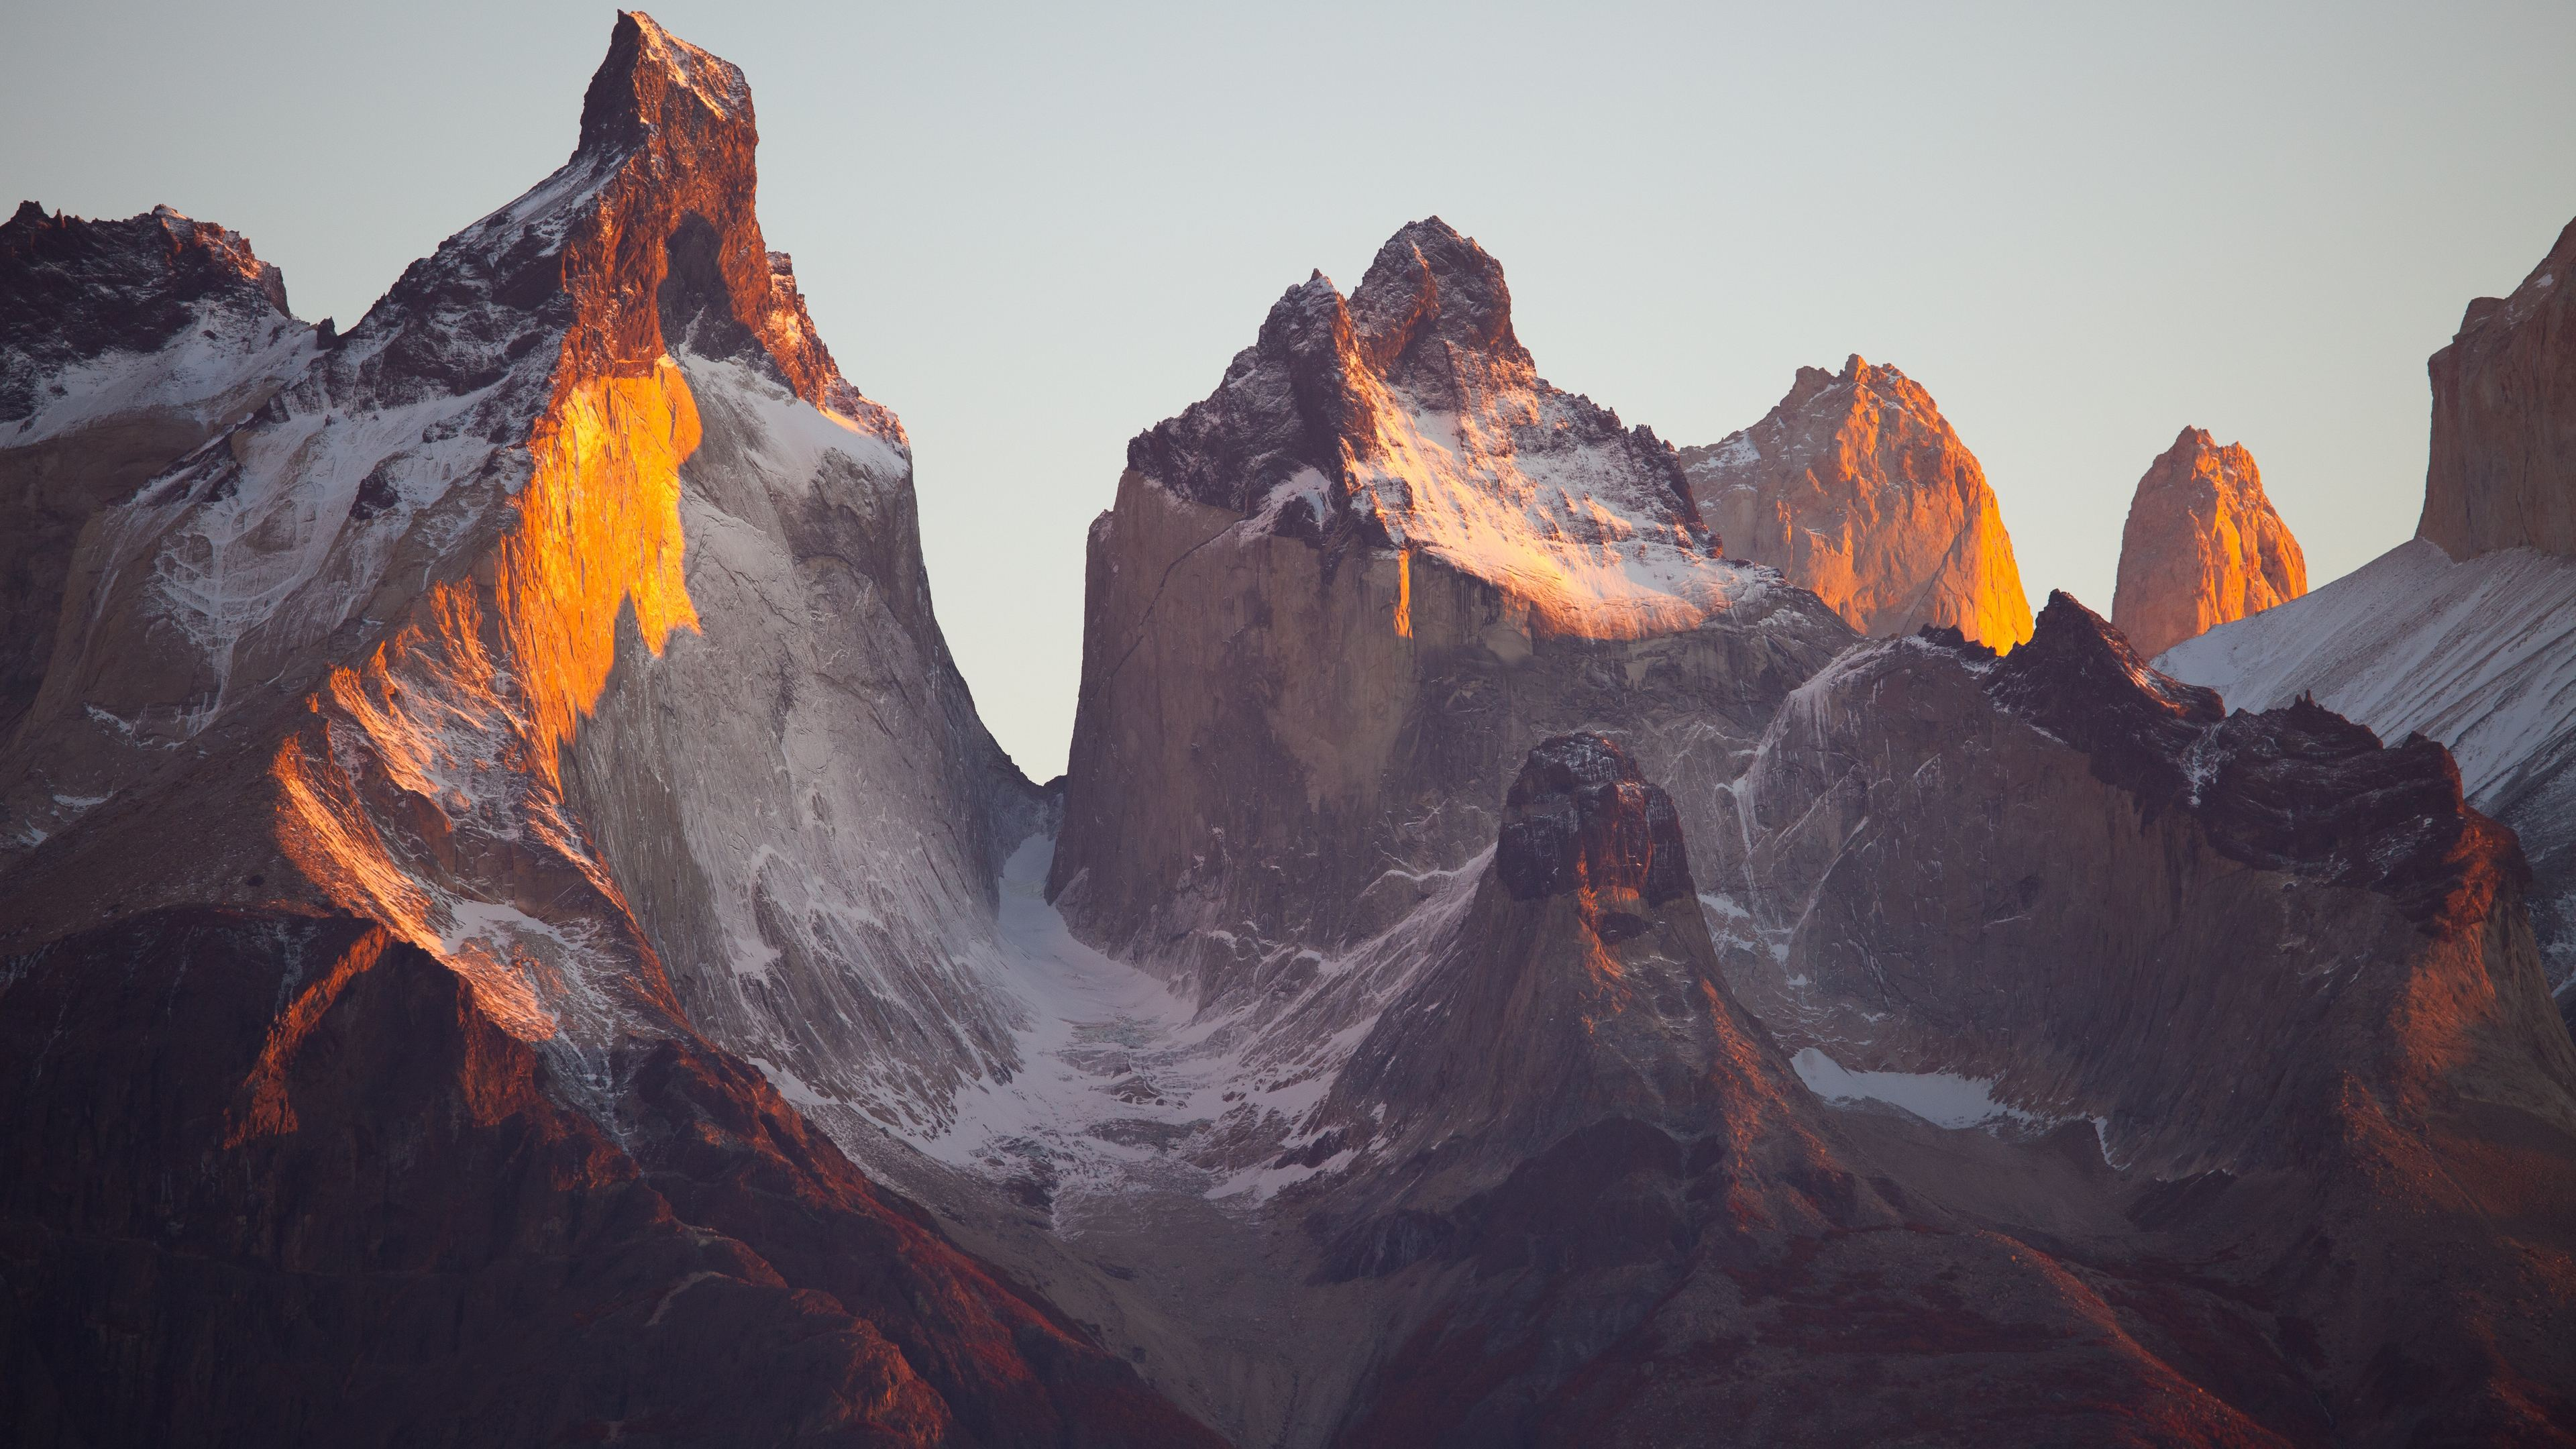 torres del paine 4k 1551644197 - Torres Del Paine 4k - photography wallpapers, nature wallpapers, hd-wallpapers, 4k-wallpapers